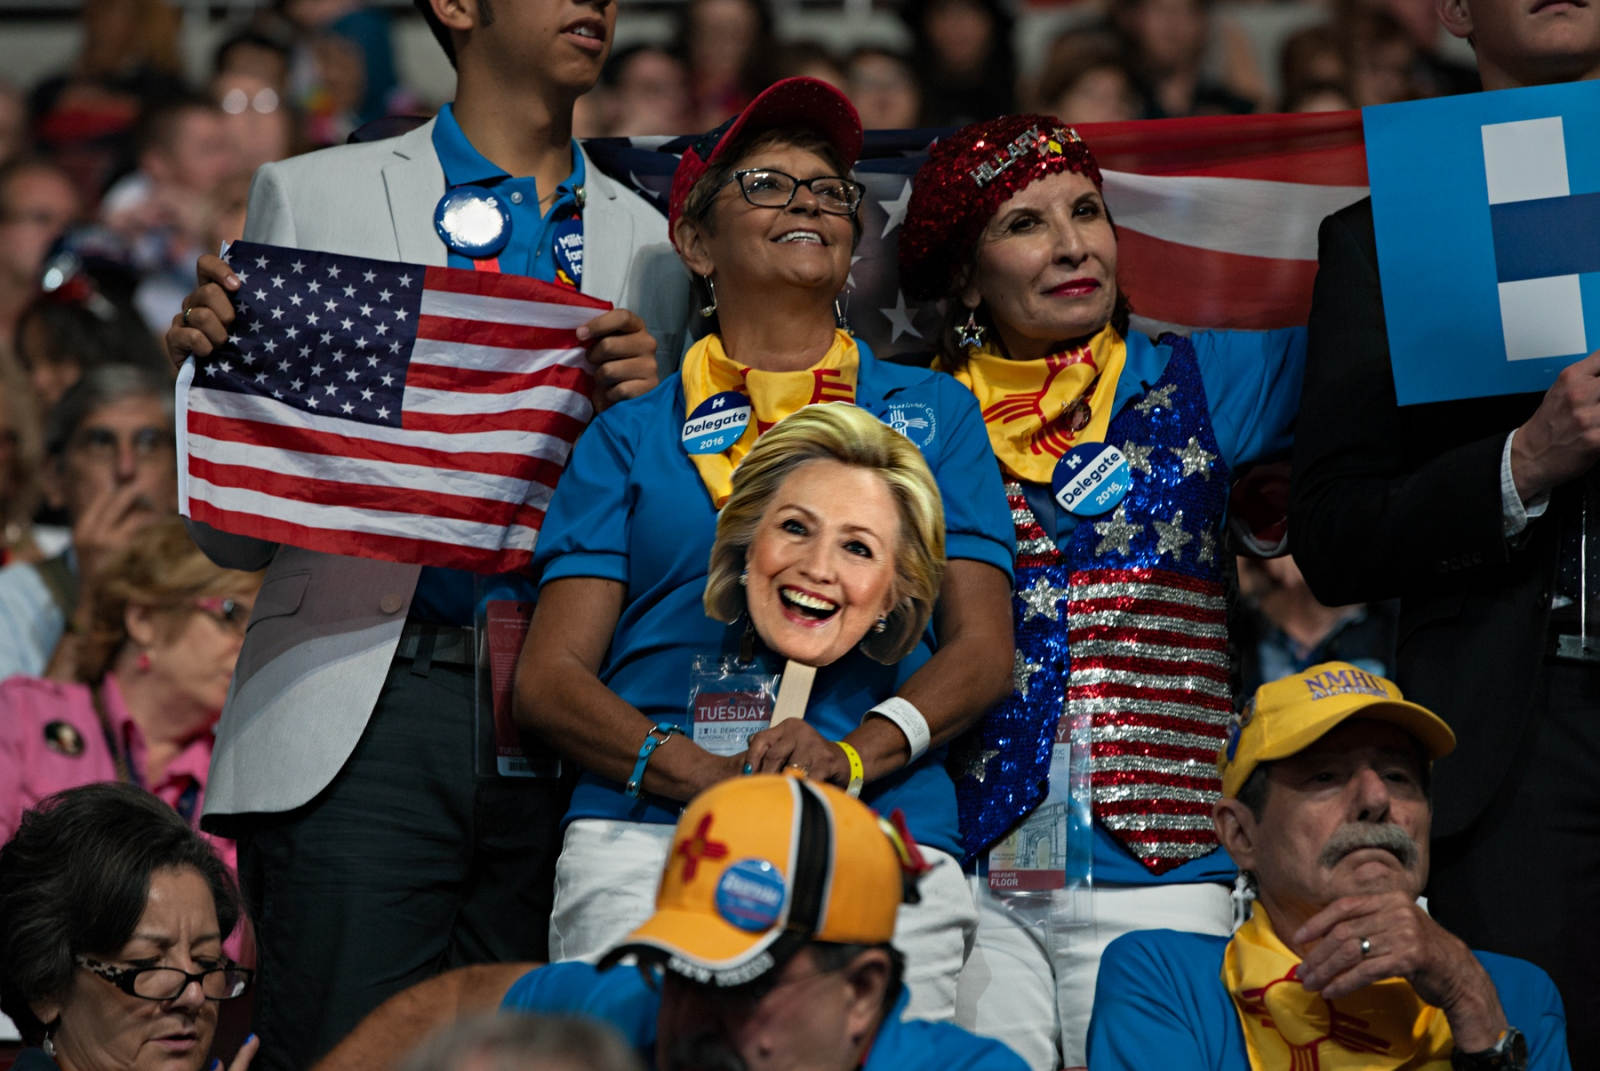 July 26, 2016 - Philadelphia, Pennsylvania - During the Democratic National Convention in Philadelphia, Pennsylvania, a group of Hillary Clinton supporters cheer on the speakers. The mood at the DNC was from jubilant to angry depending on whether a particular group was supporting Clinton or Sanders for presidency.